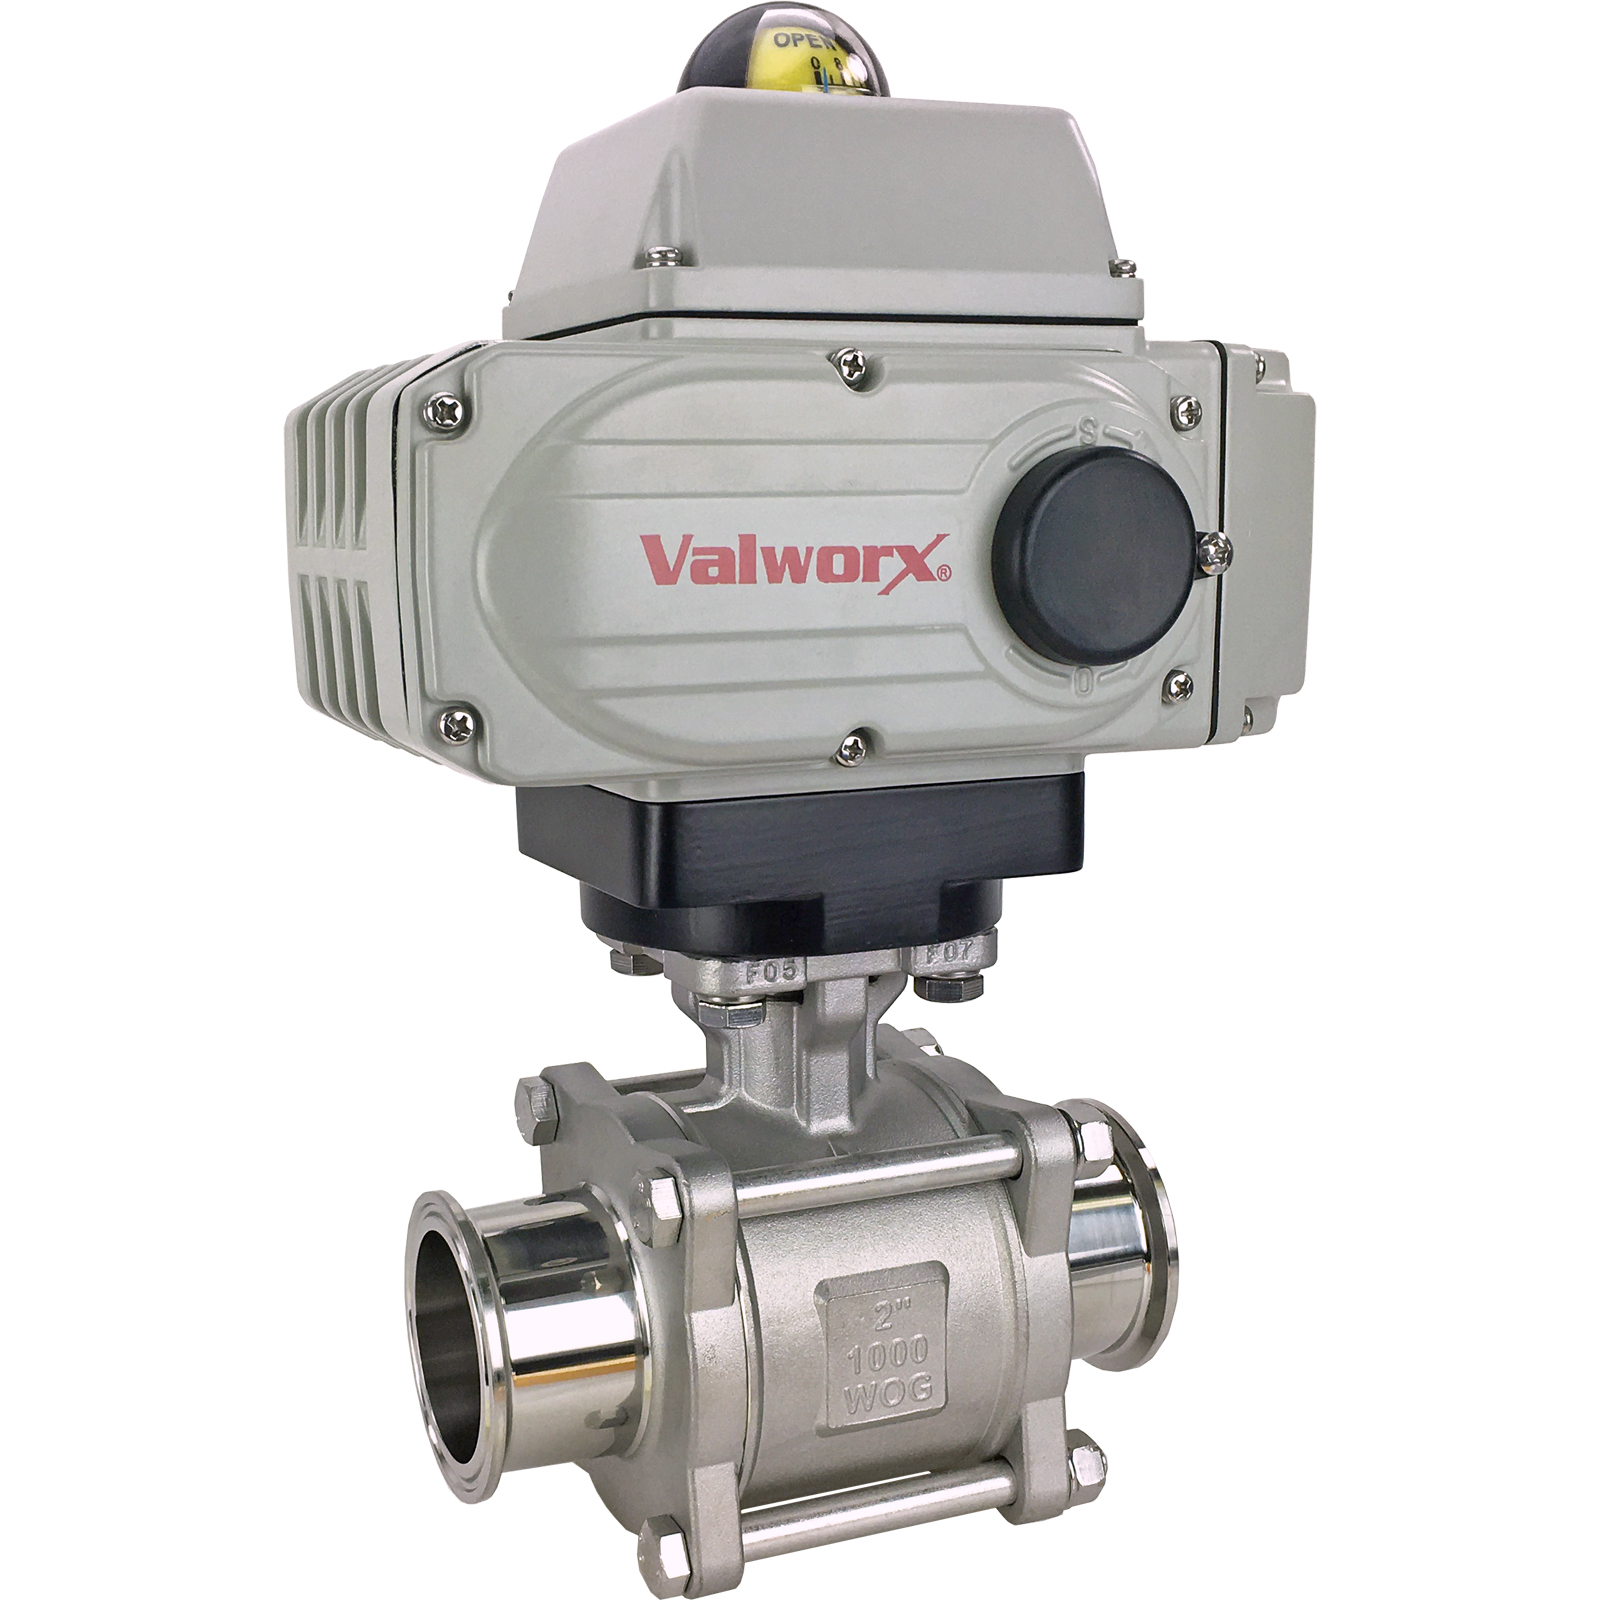 "2"" Sanitary Ball Valve, 24 VDC EPS-Positioner, Tri-Clamp"